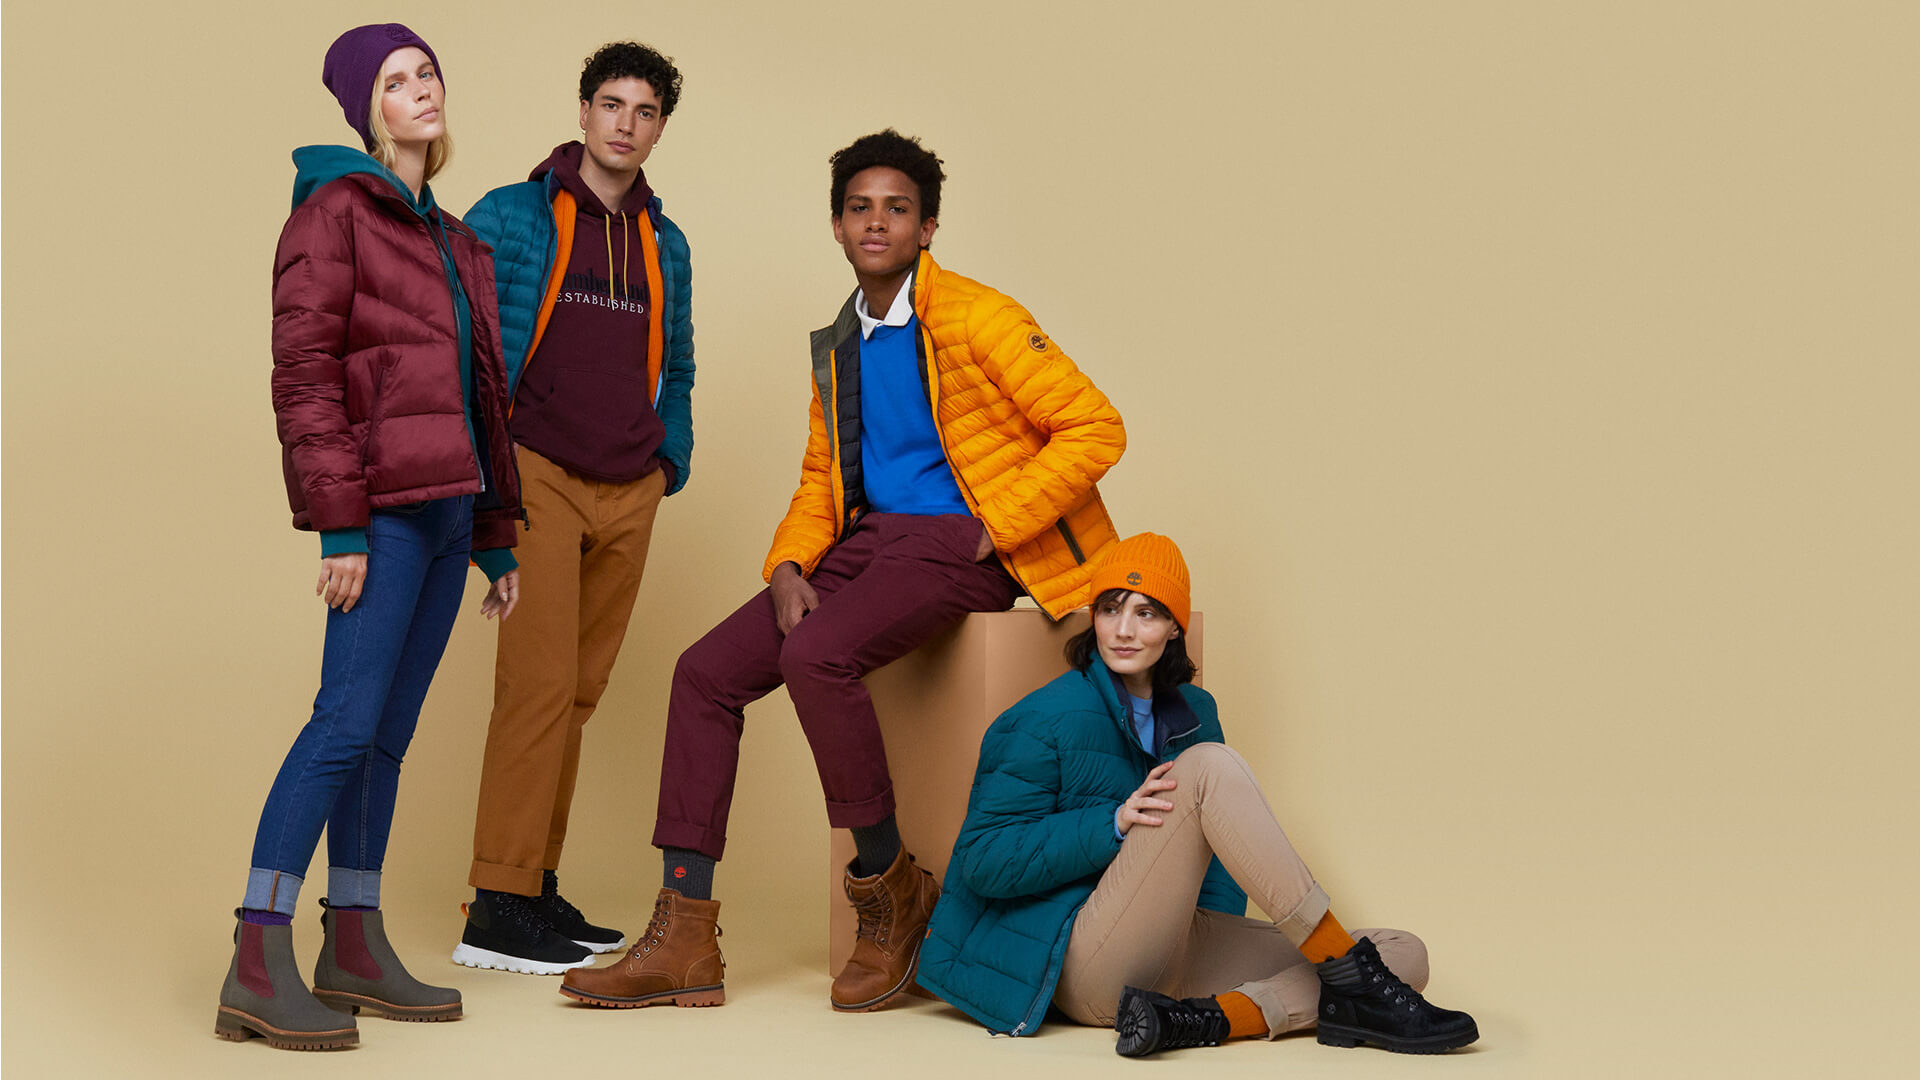 Models in Timberland outerwear